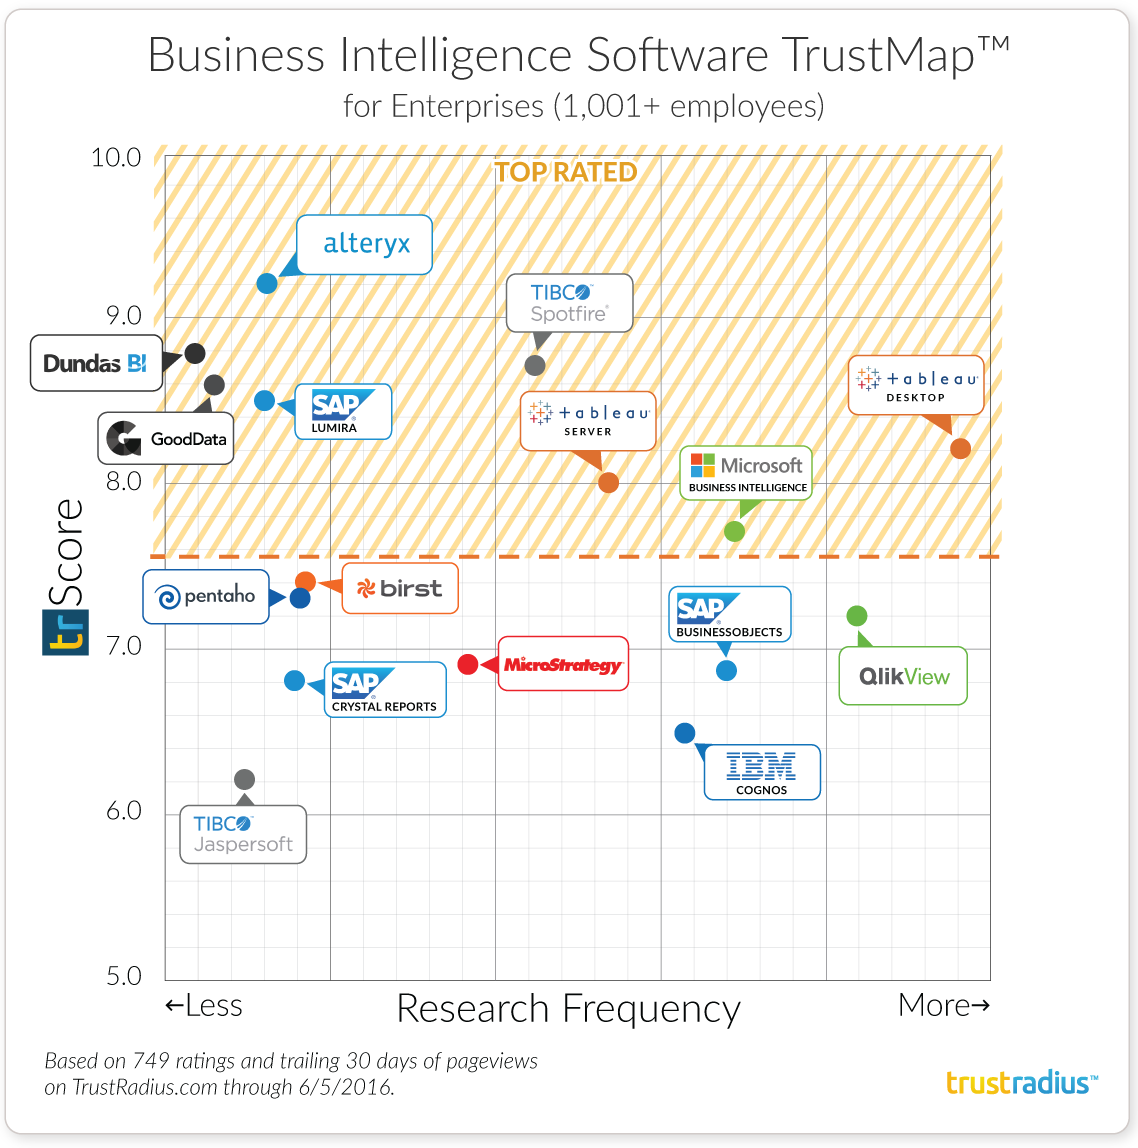 Enterprise Business Intelligence Software TrustMap